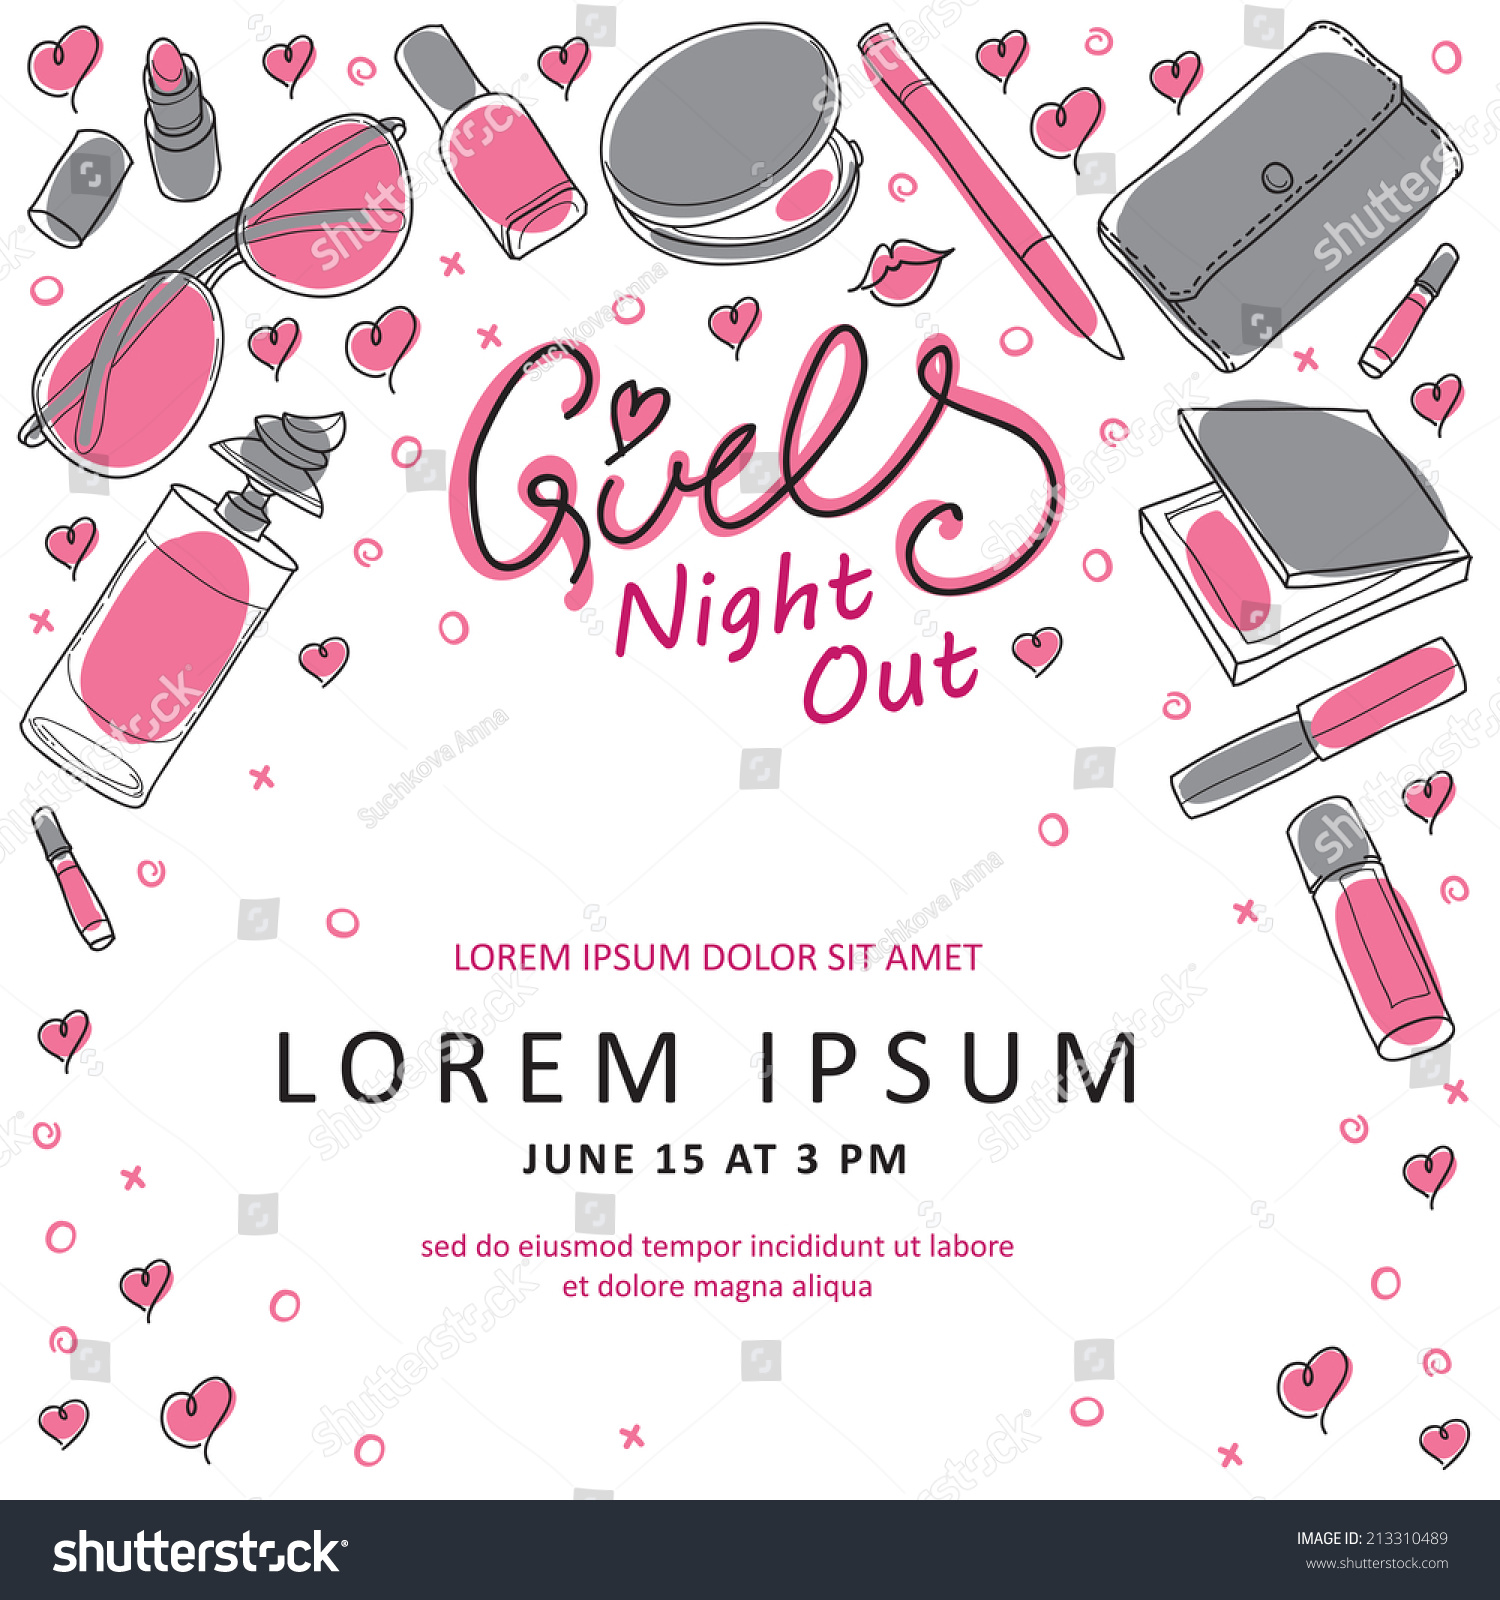 Girls Night Out Party Invitation Card Vector 213310489 – Designing an Invitation Card